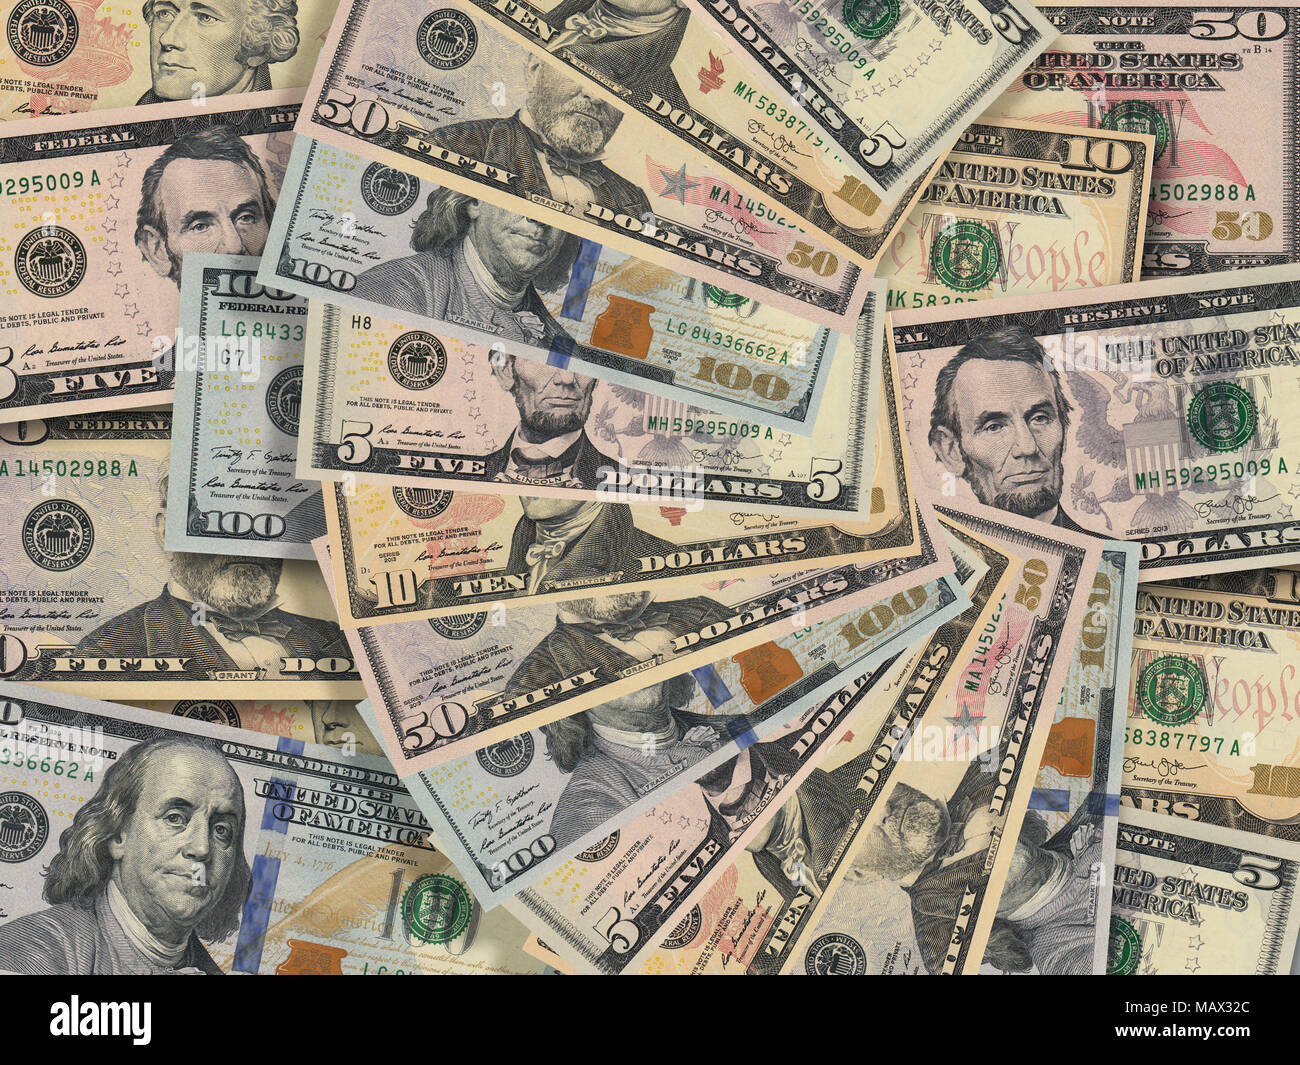 Fan of american dollar bills money of various currencies in close up on background of pile of dollar bills - Stock Image